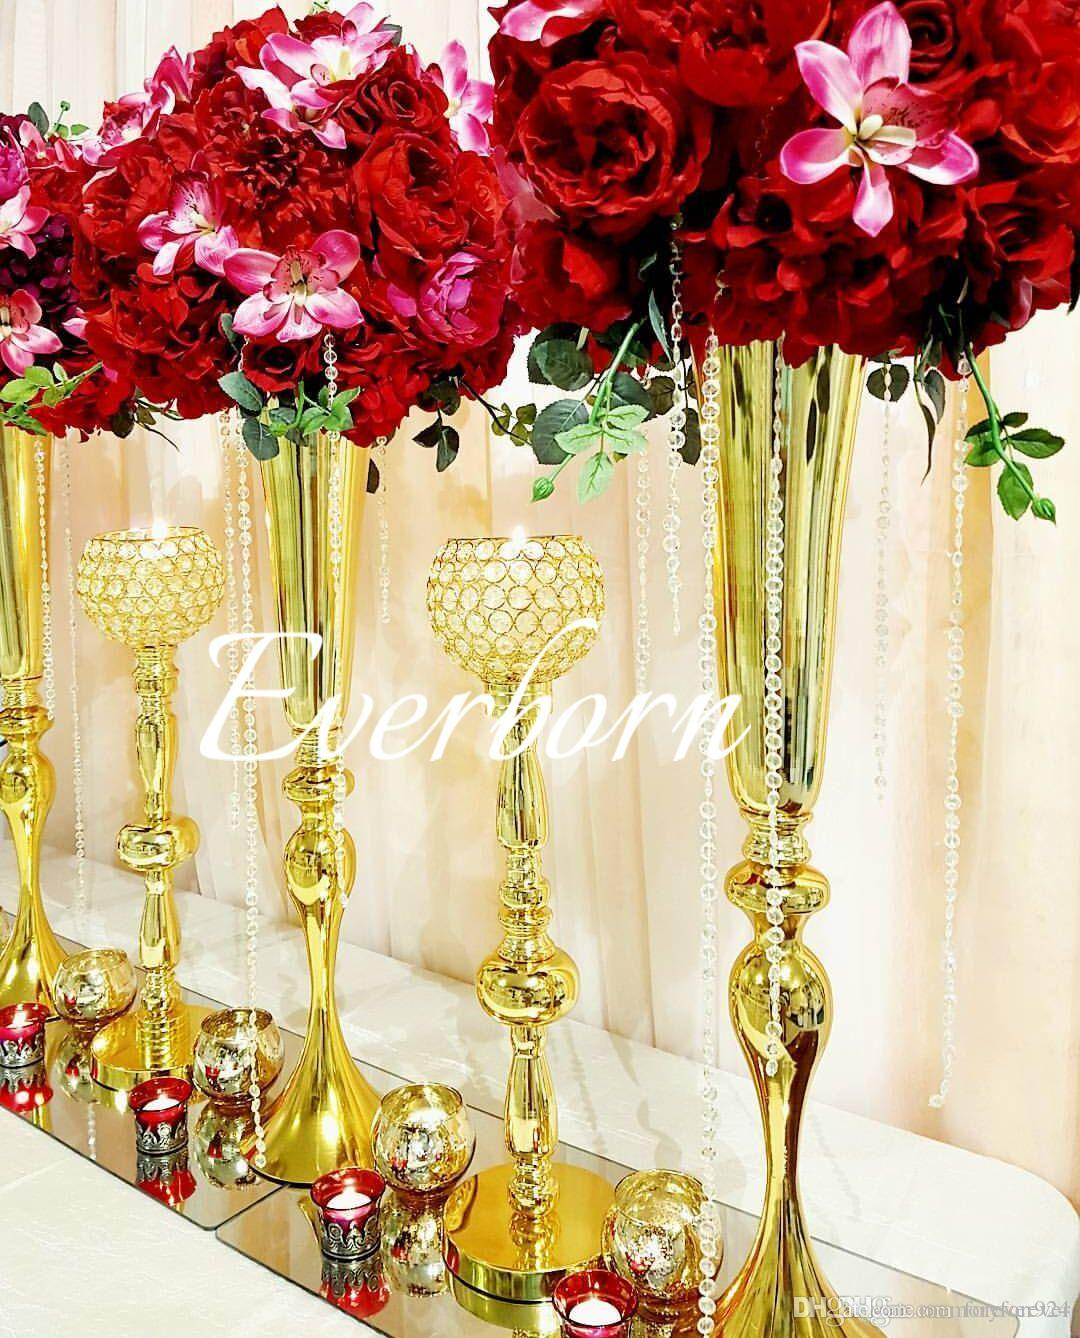 2019 88cm Tall Slim Metal Flower Vase  Trumpet Vases Centerpieces For Wedding Decor Home Decoration Wedding Flower Stand Wholesale From Memoryforever ... & 2019 88cm Tall Slim Metal Flower Vase  Trumpet Vases Centerpieces ...